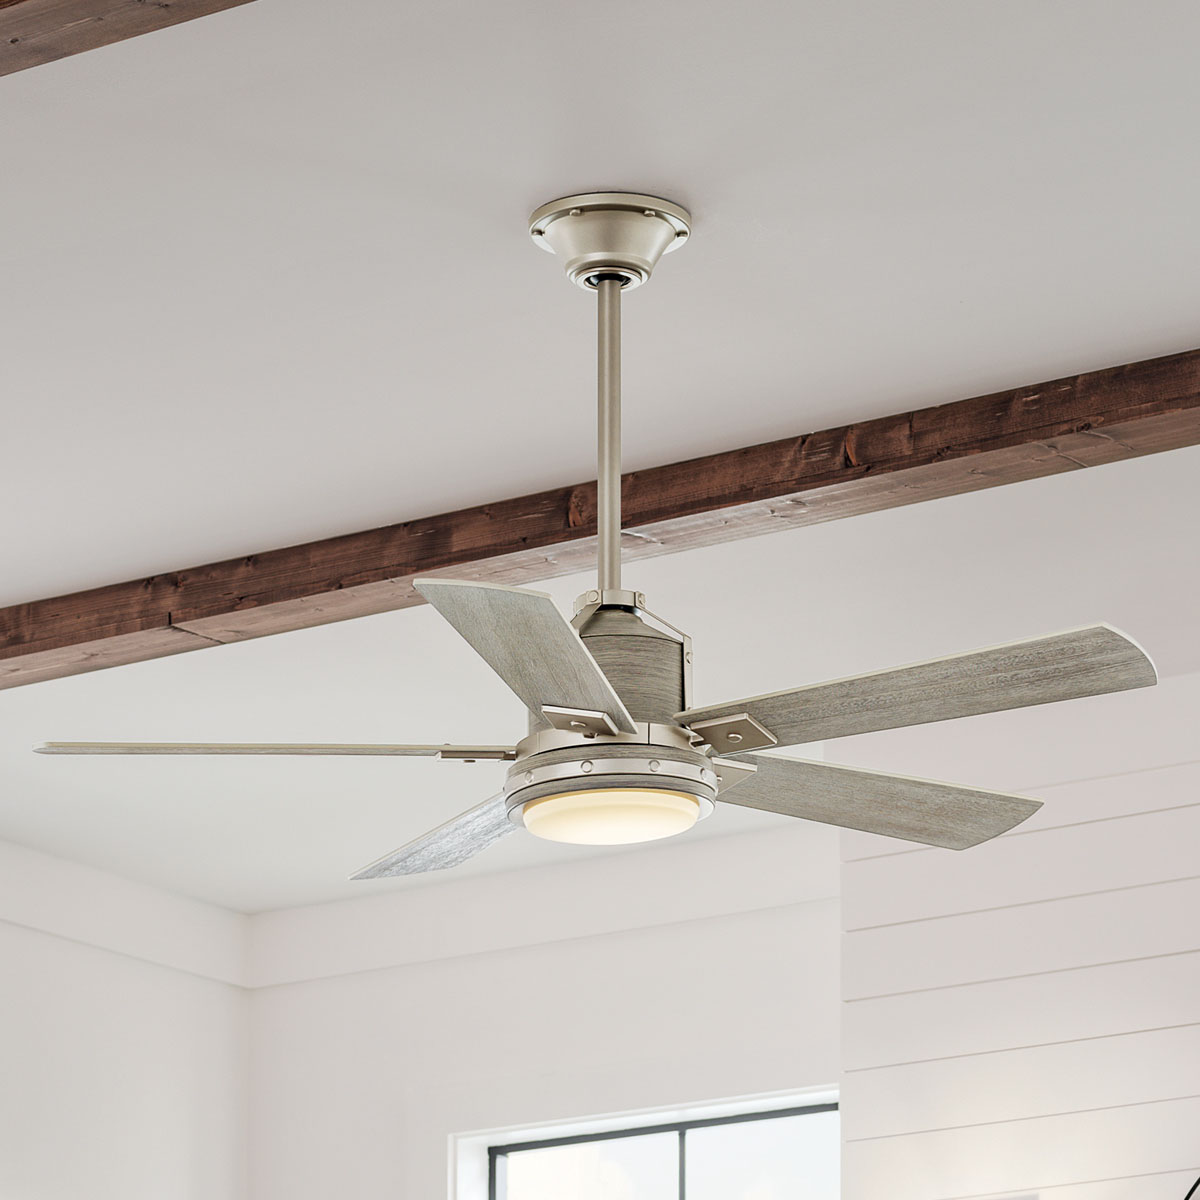 Ceiling Fans With Good Lighting Cleaning A Ceiling Fan Kichler Lighting